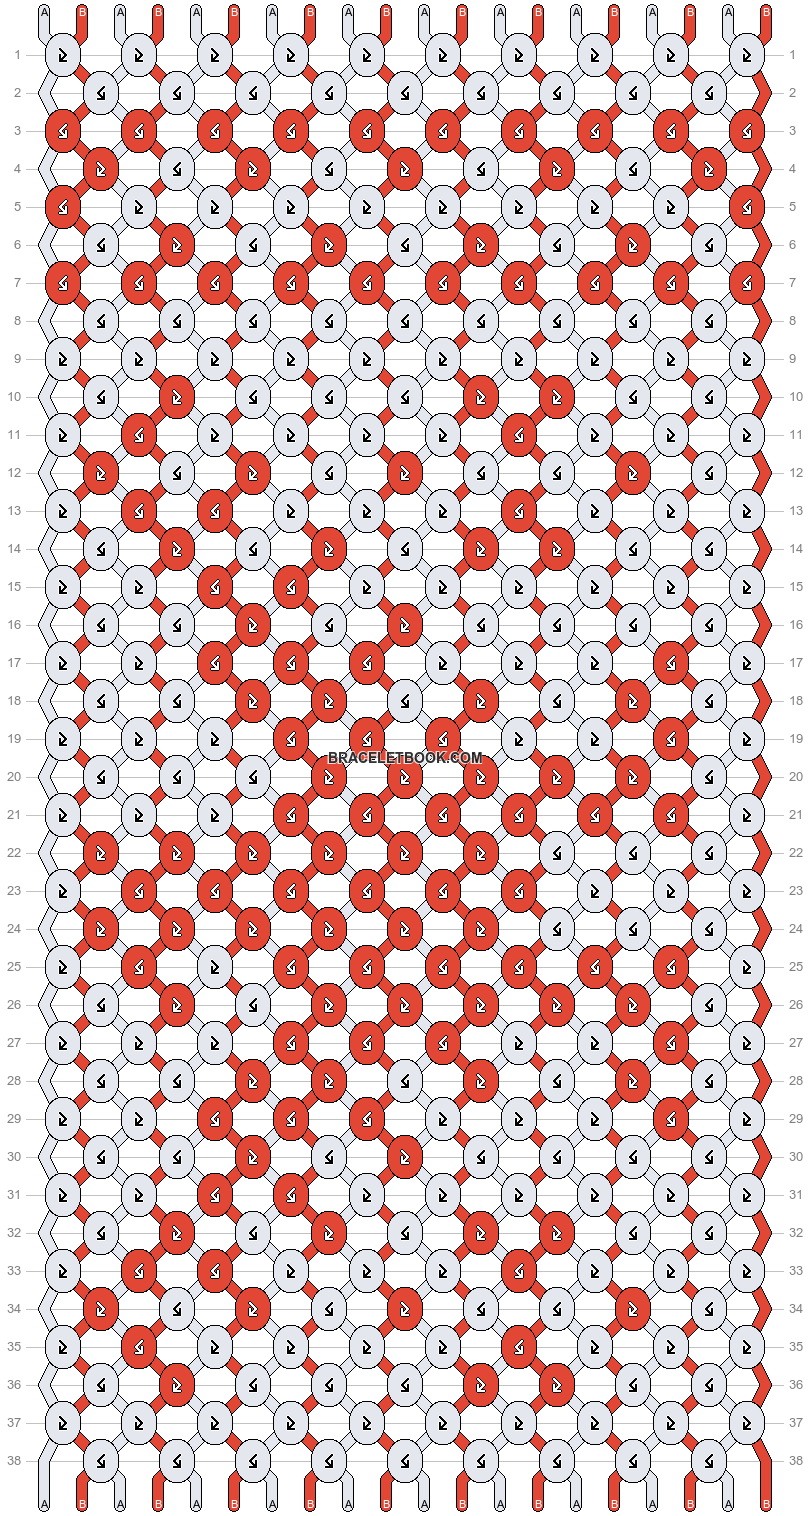 Normal Pattern #22721 added by MargaretPR